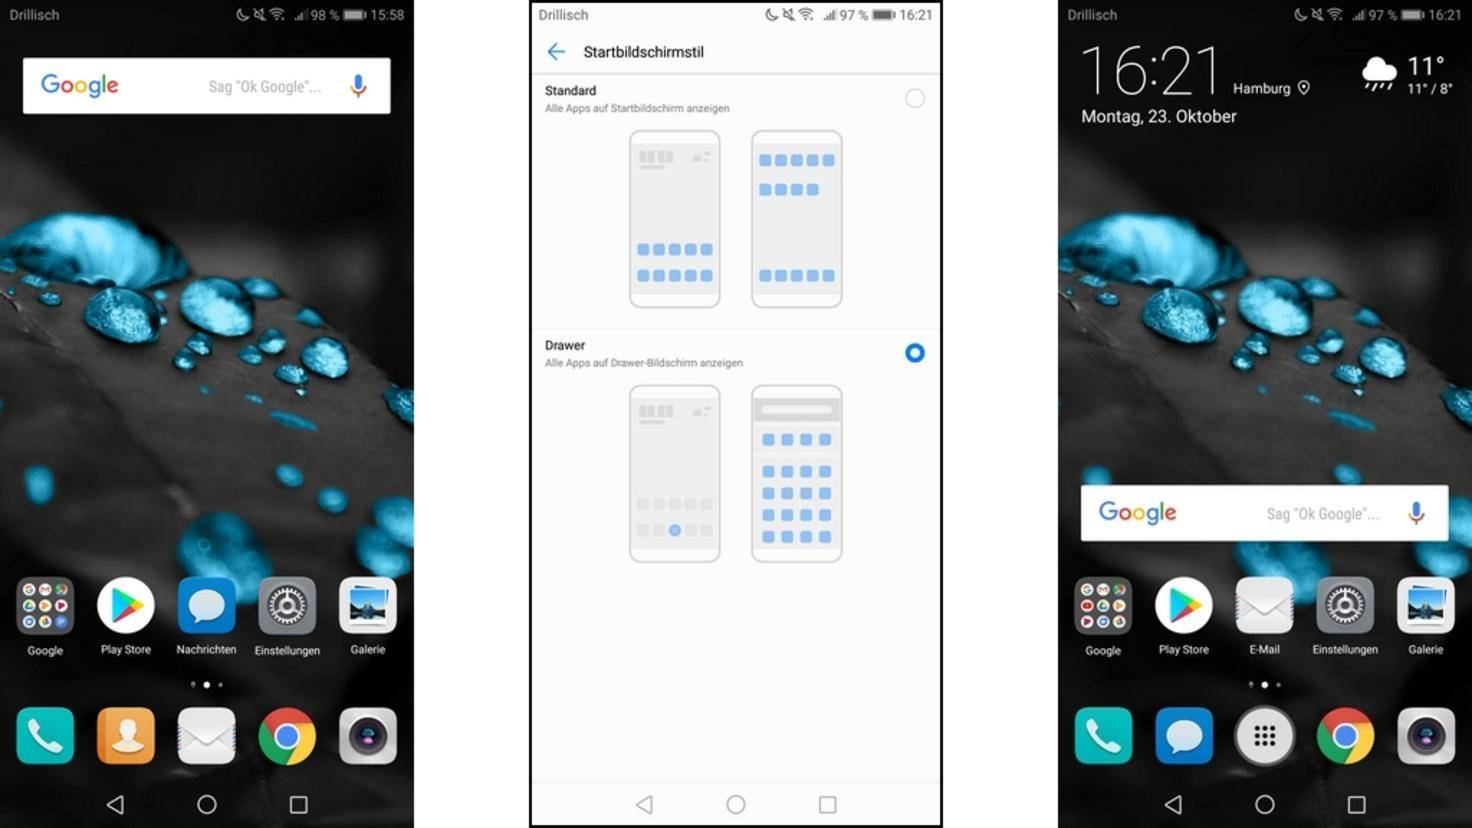 Huawei-Mate-10-Pro-Screen-05